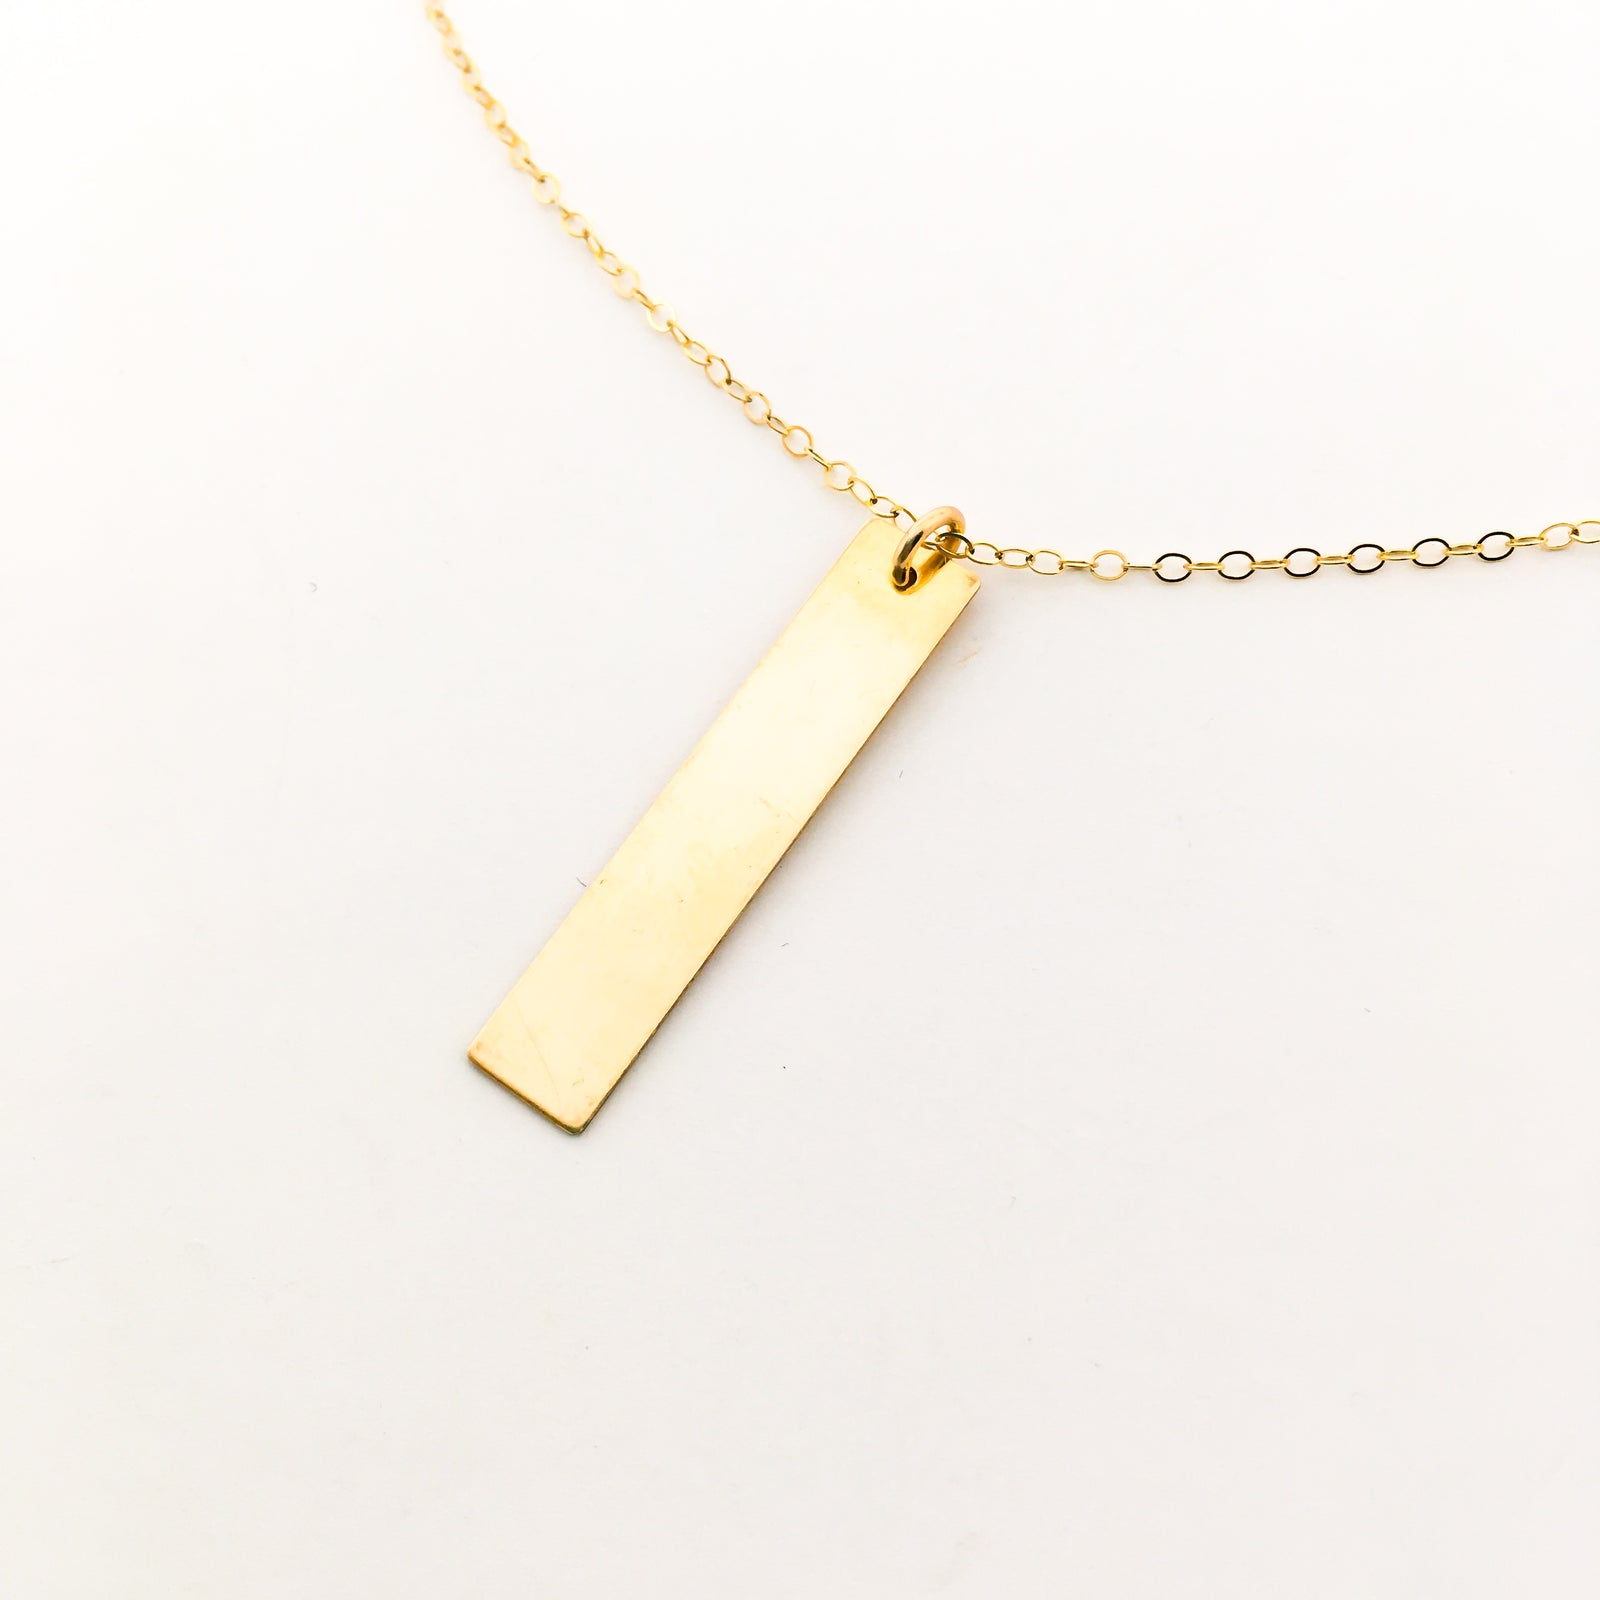 14K GOLD-FILLED LONG WIDE BAR NECKLACE | SIZE OPTIONS